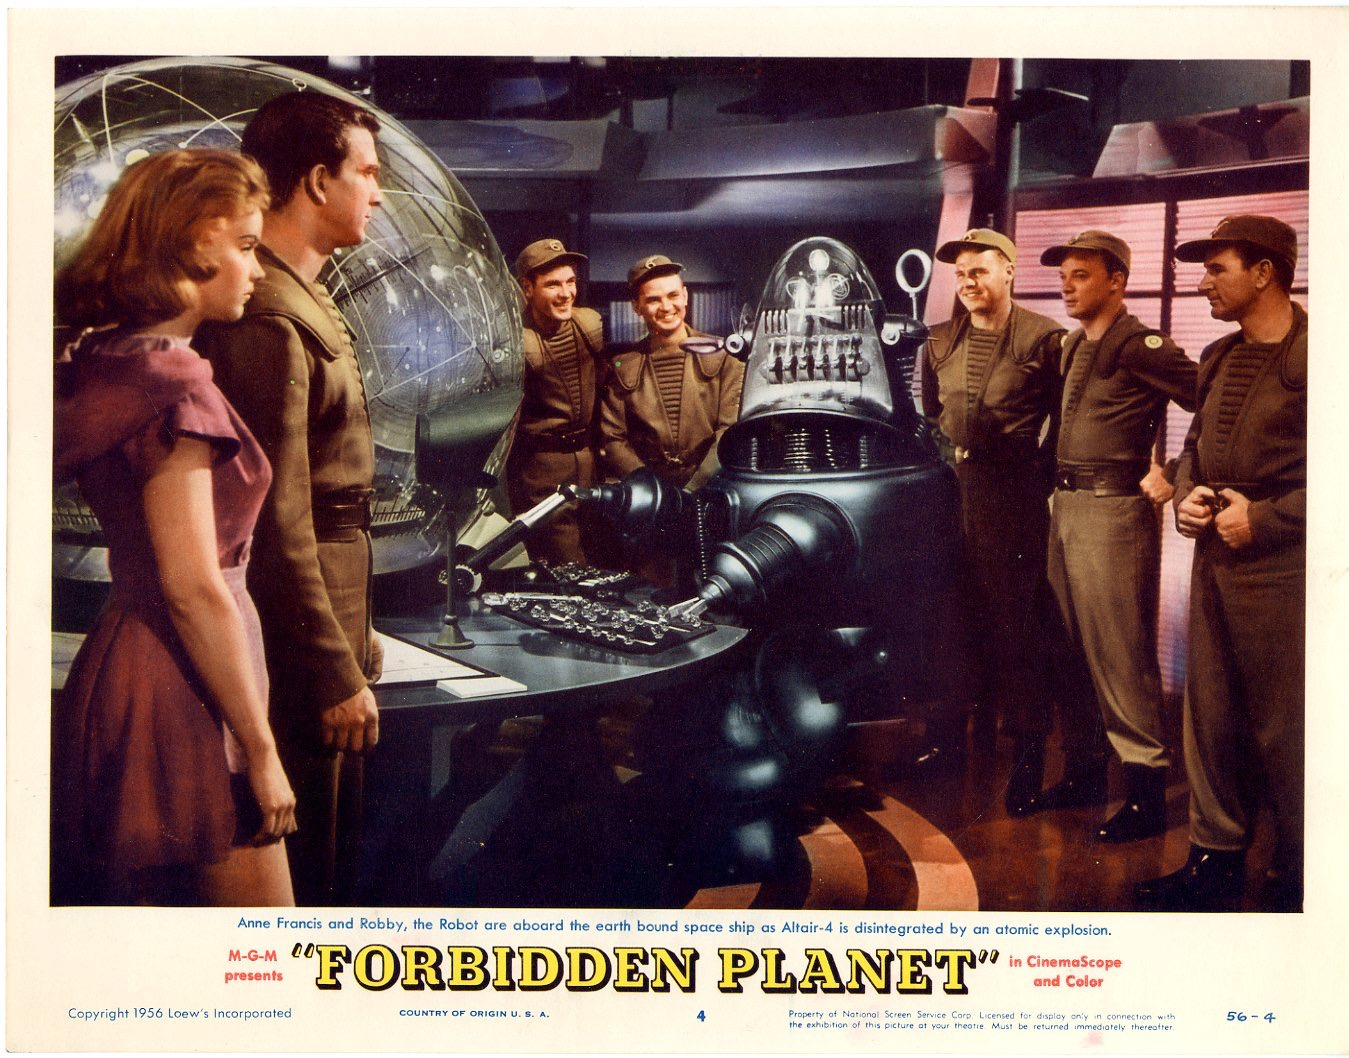 forbidden planet comparison to shakespeares the Forbidden planet (1956) ads start streaming download hd share tweet pin it google+ email whatsapp a starship crew goes to investigate the silence of a planet's colony only to find two survivors and a deadly secret that one of them has.